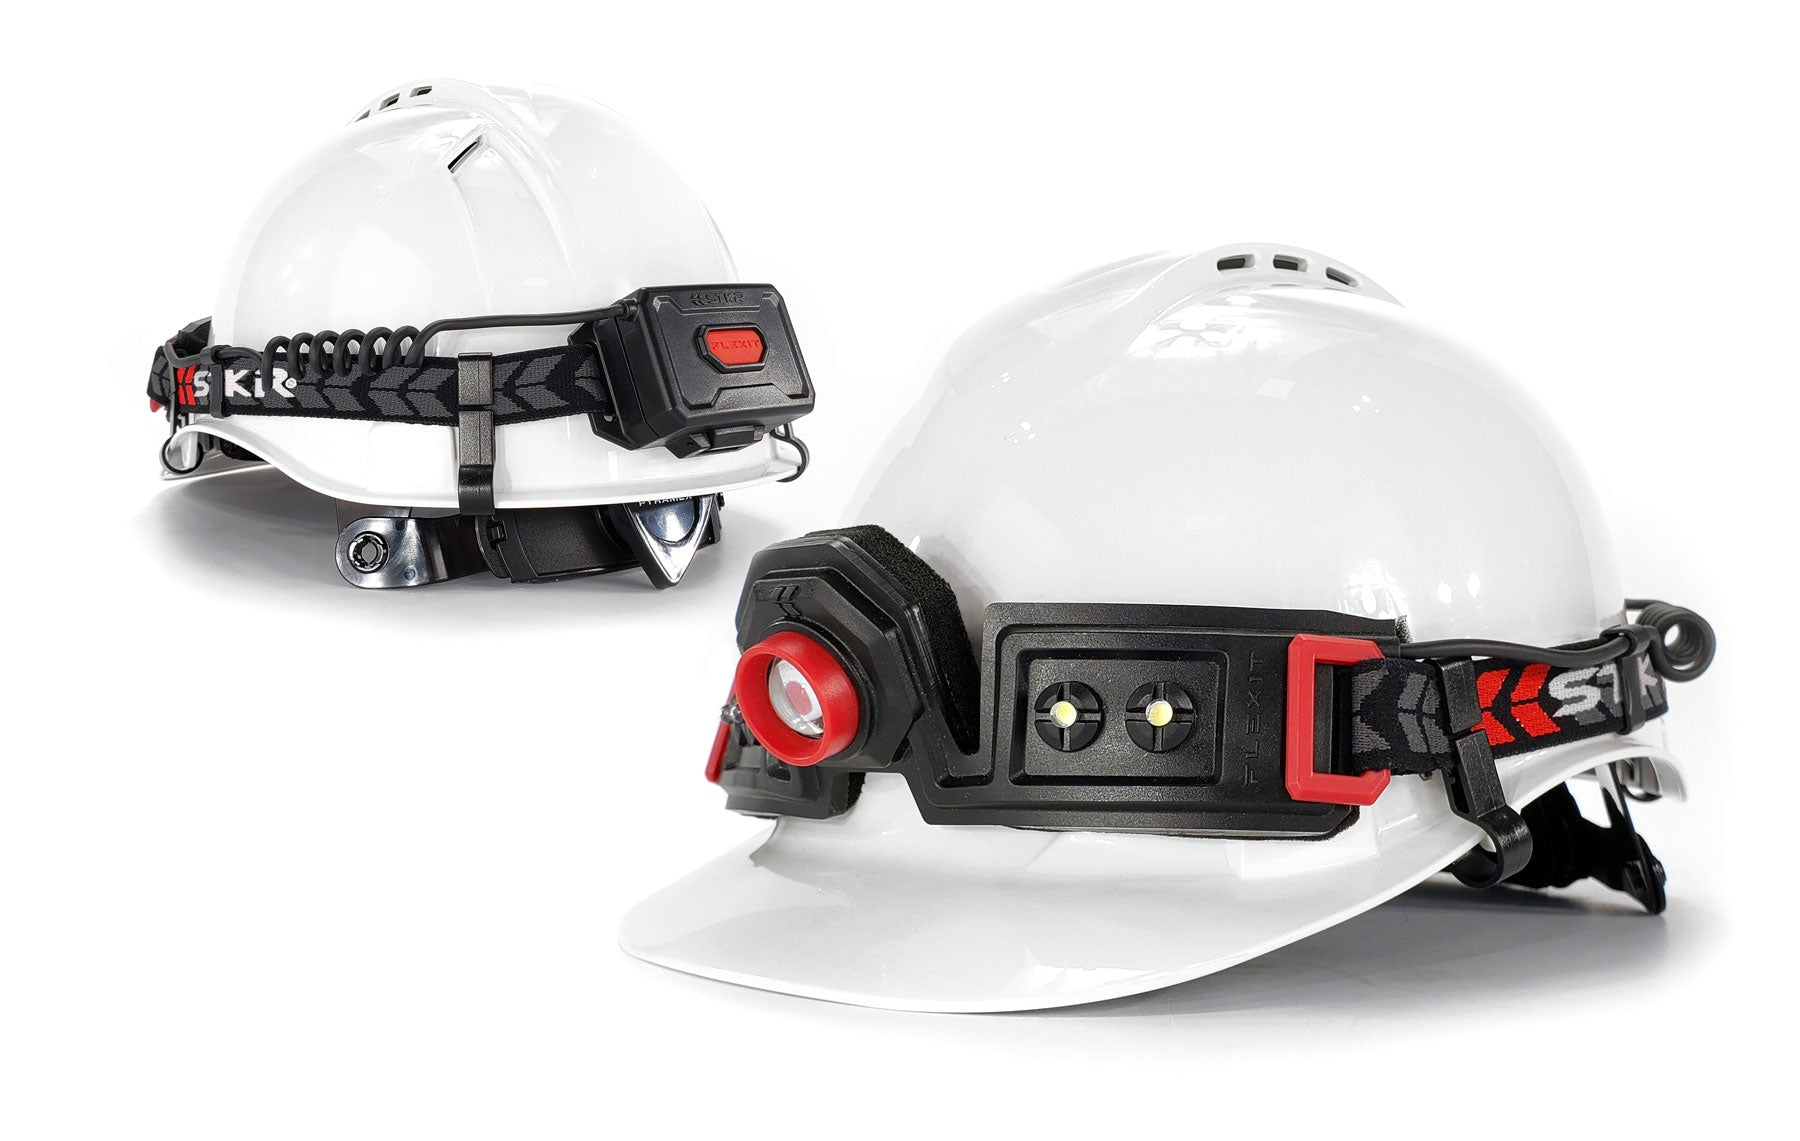 STKR Concepts FLEXIT Headlamp 2.5 hard hat compatible - striker